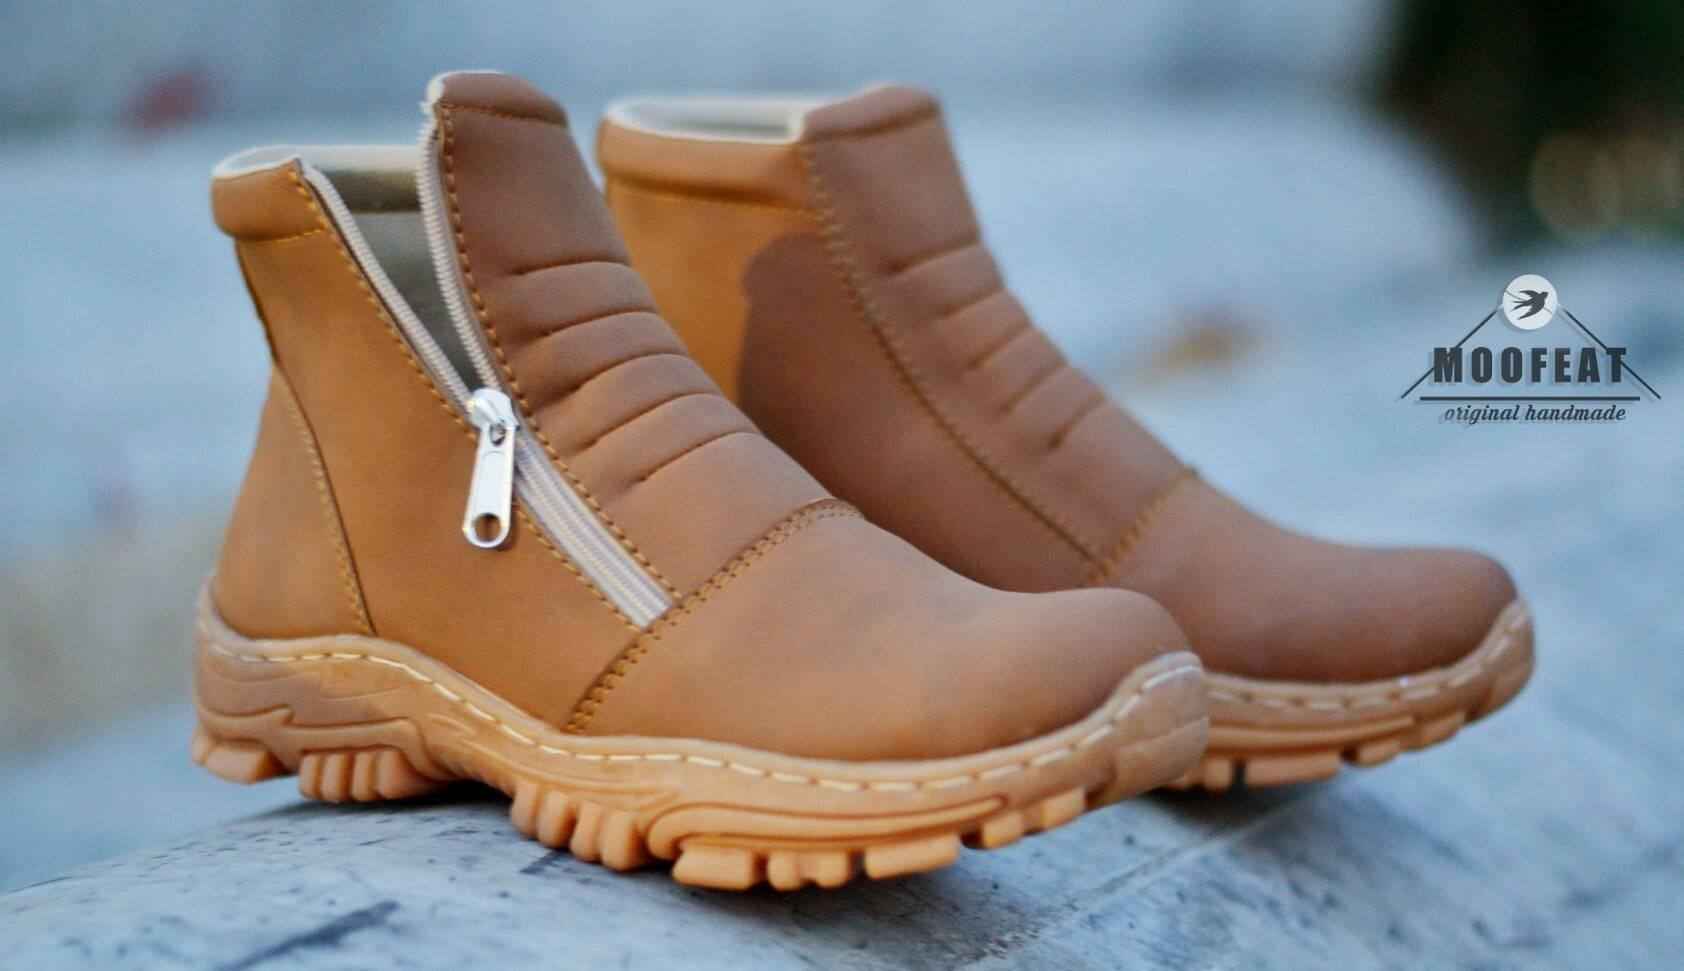 Buy Sell Cheapest Sepatu Moofeat Original Best Quality Product Carlo Black Boots Safety Ujung Besi Pria Boot Proyek Pdl Pdh Kerja Advanture Hitam